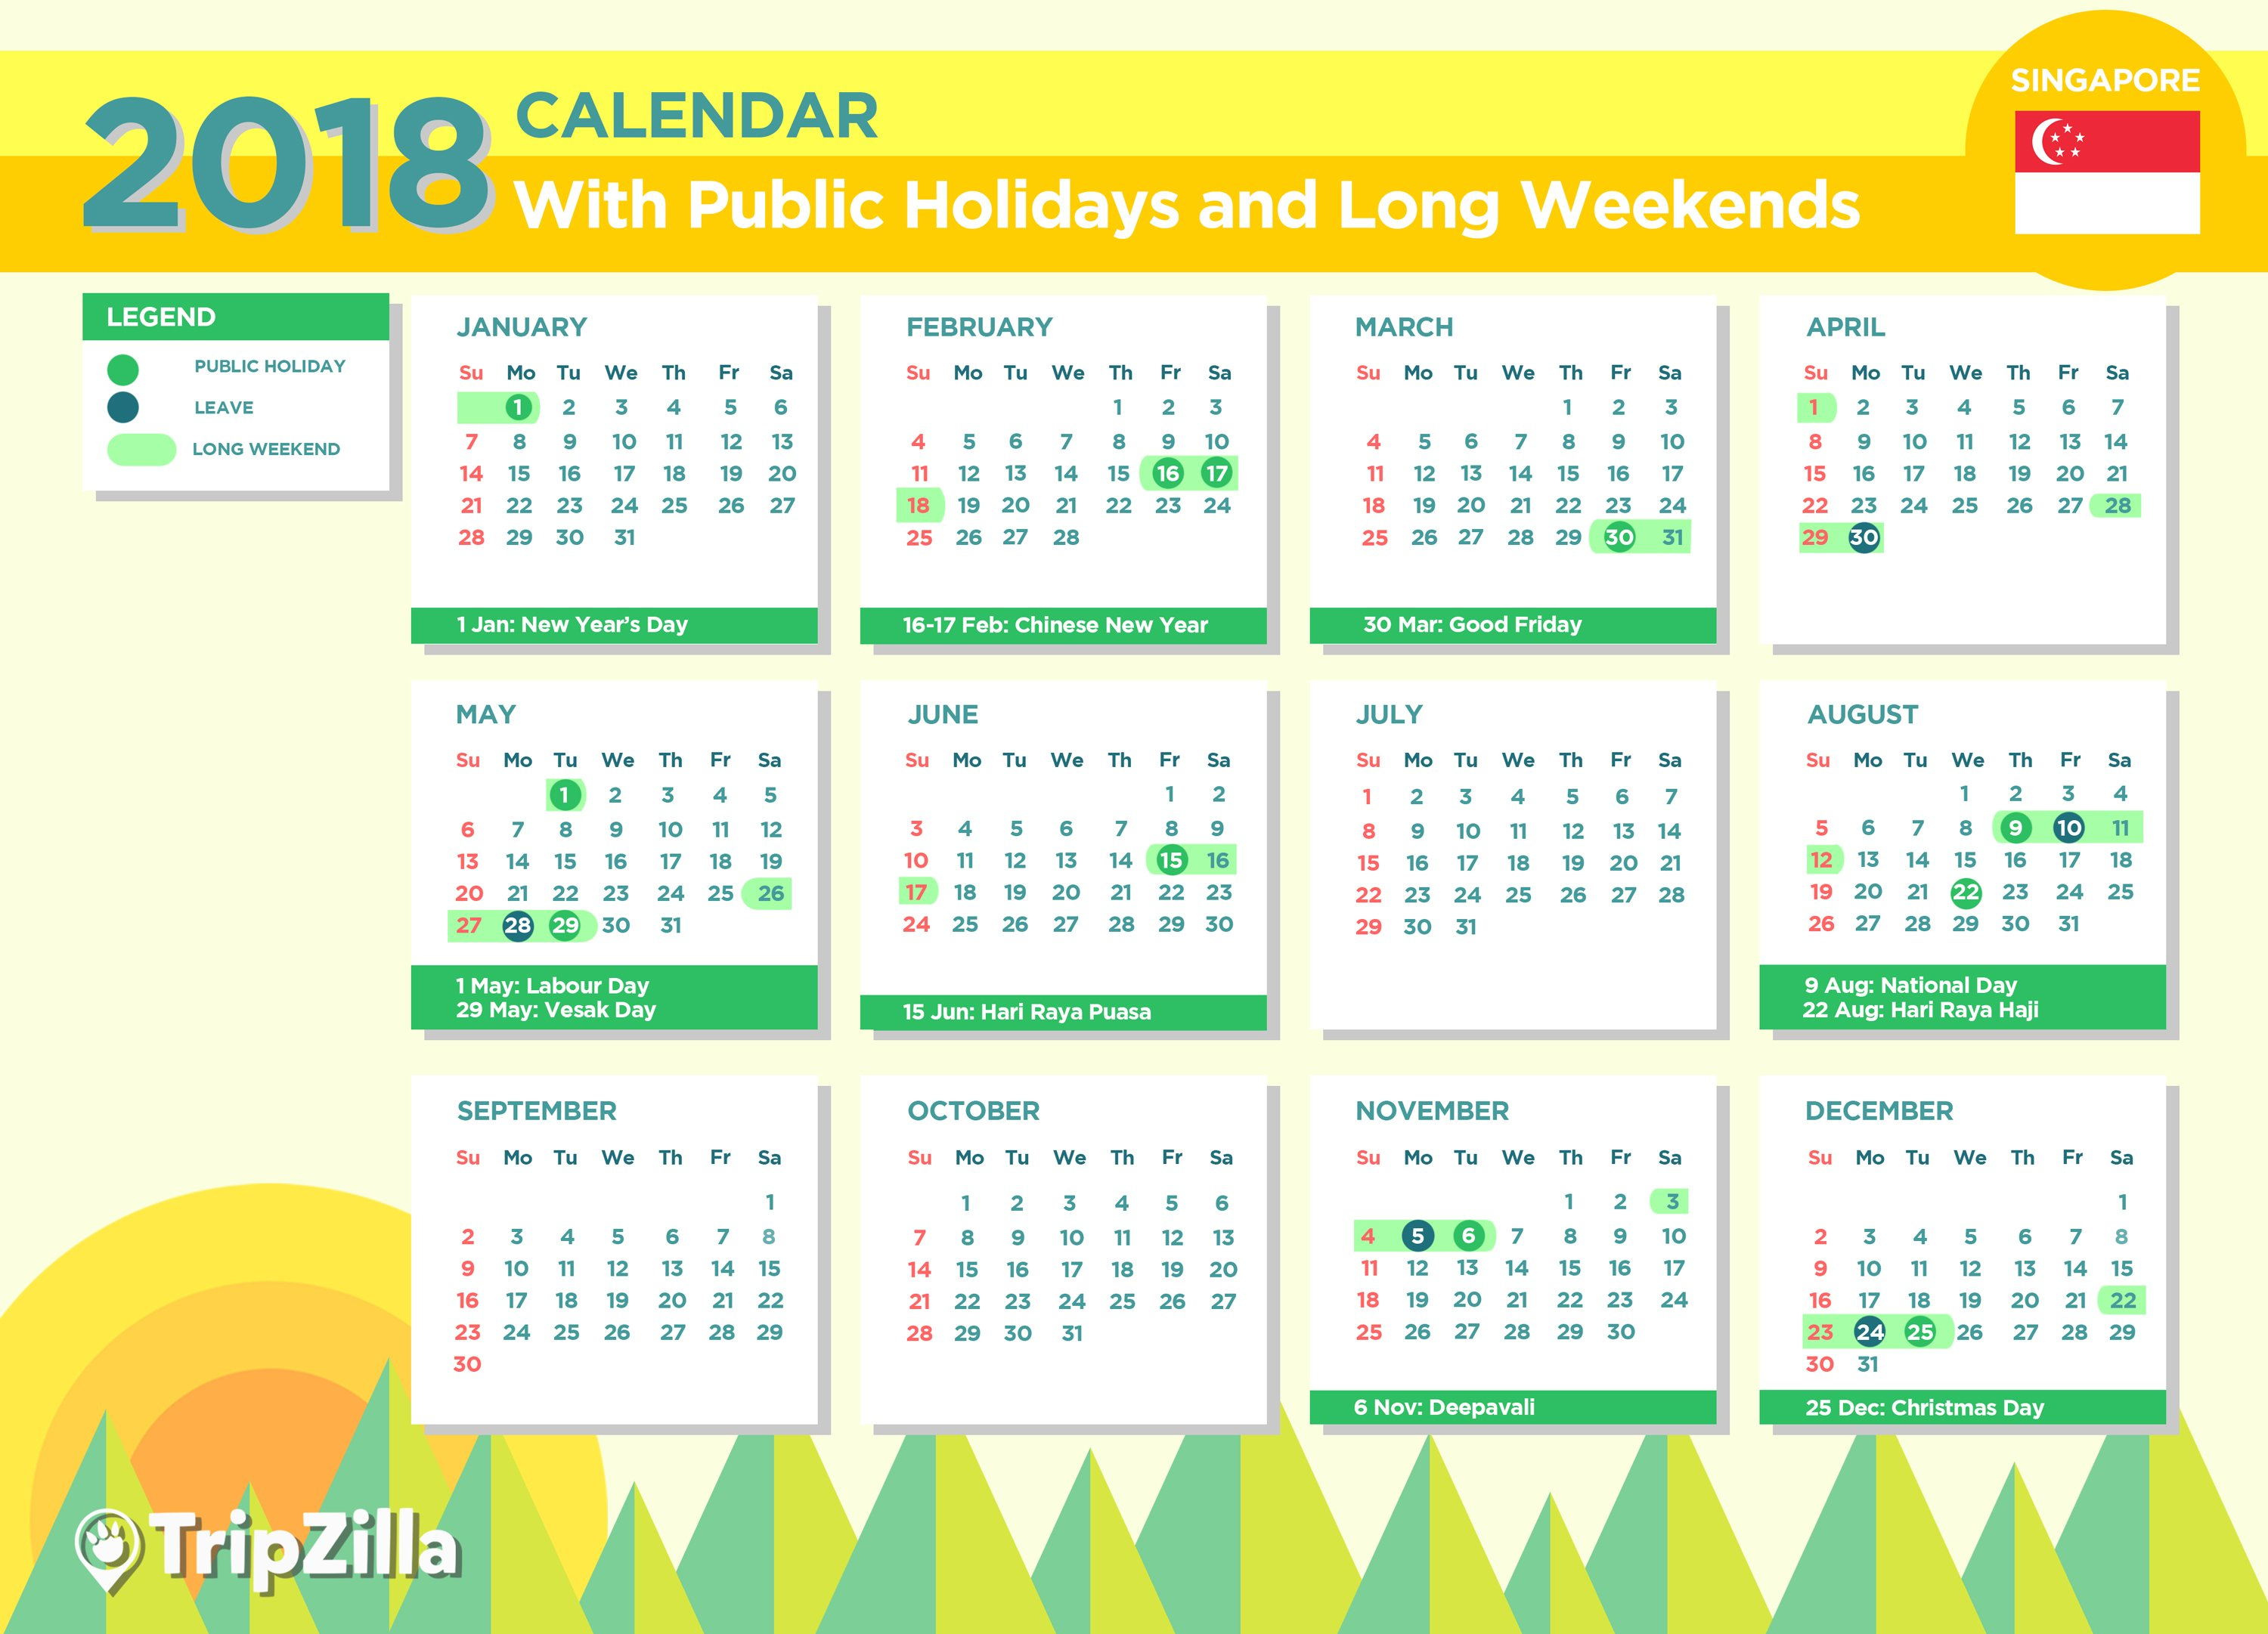 Singapore 2018 Public Holidays and Long Weekends Calendar